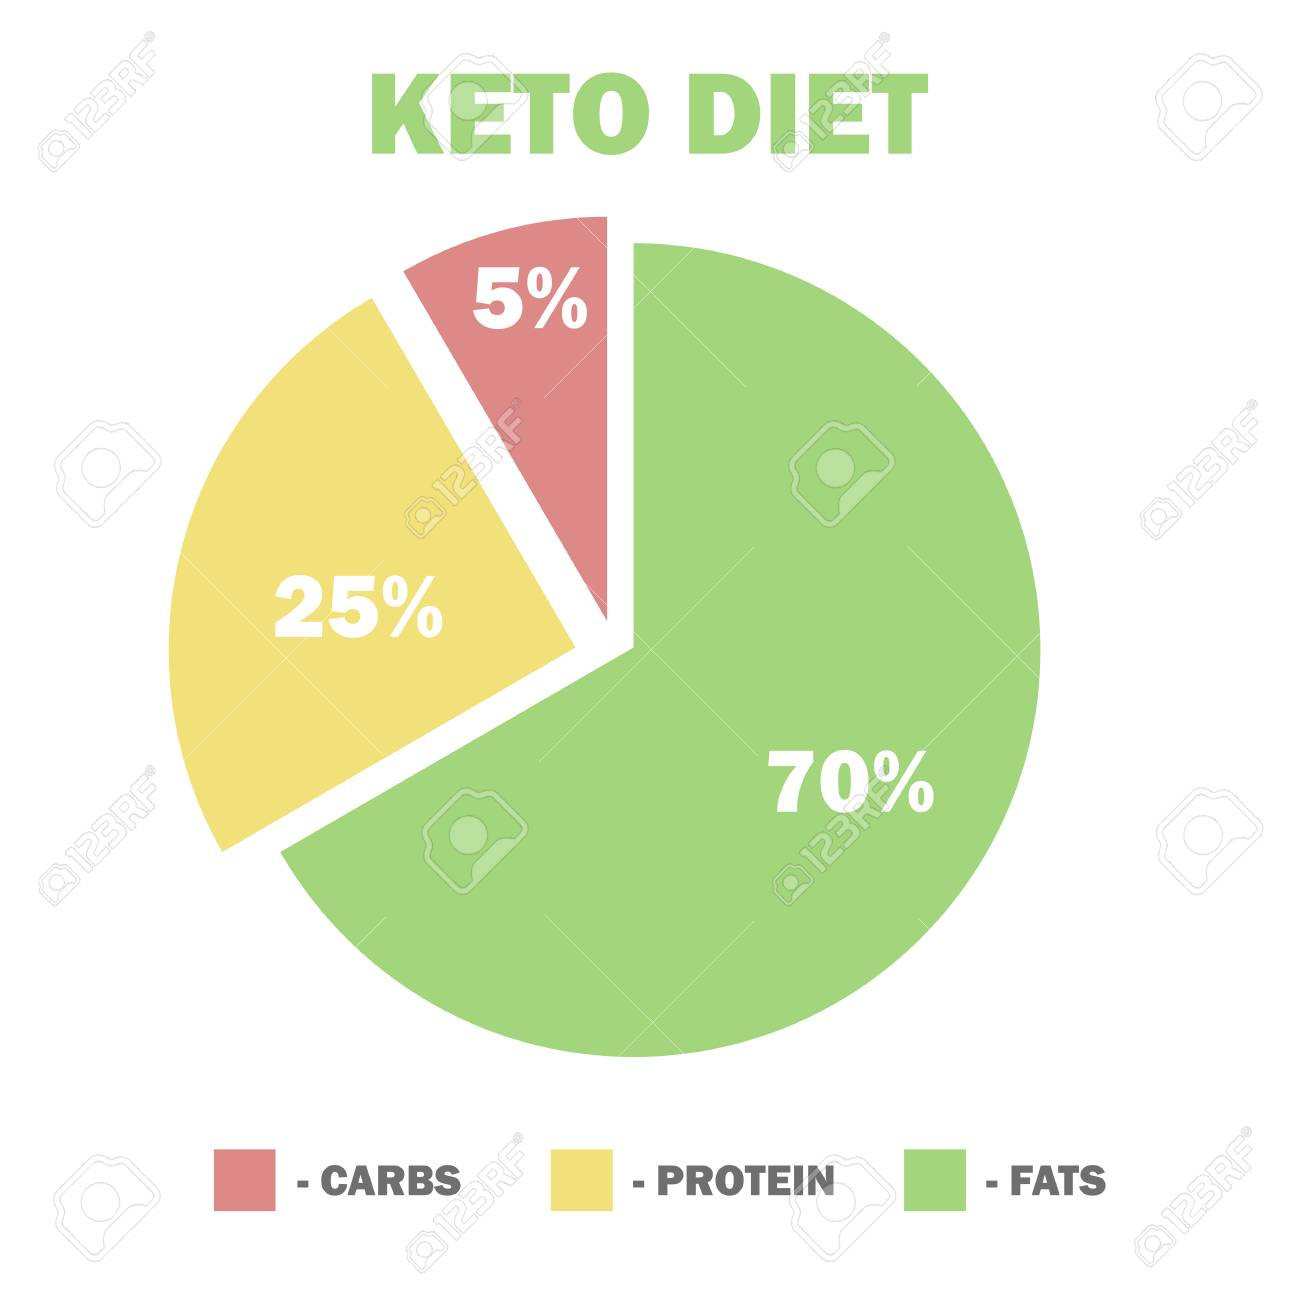 hight resolution of ketogenic diet macros diagram low carbs high healthy fat vector illustration for info